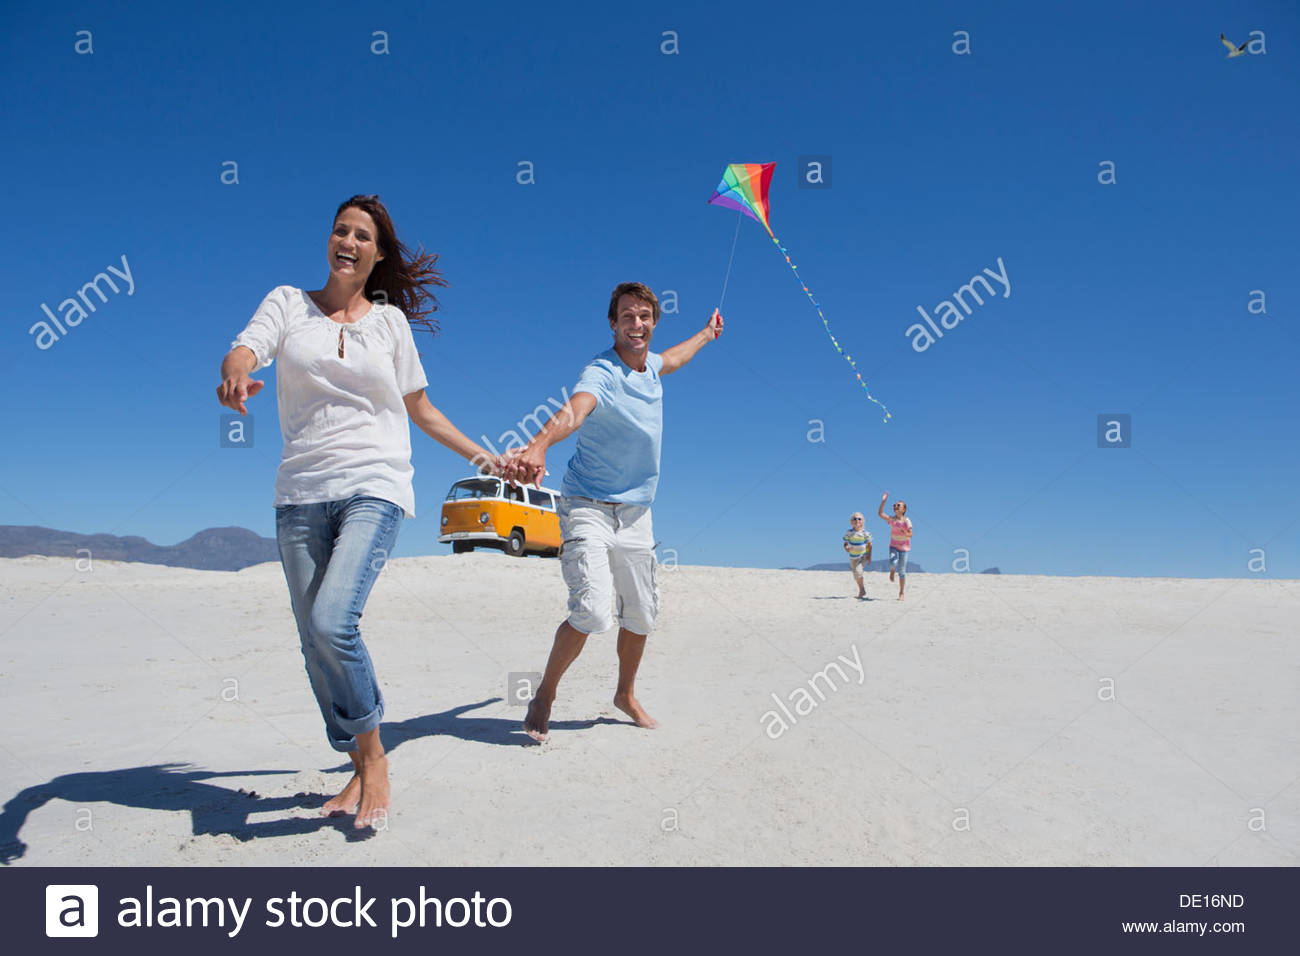 Happy family with kite running on sunny beach with van in background - Stock Image